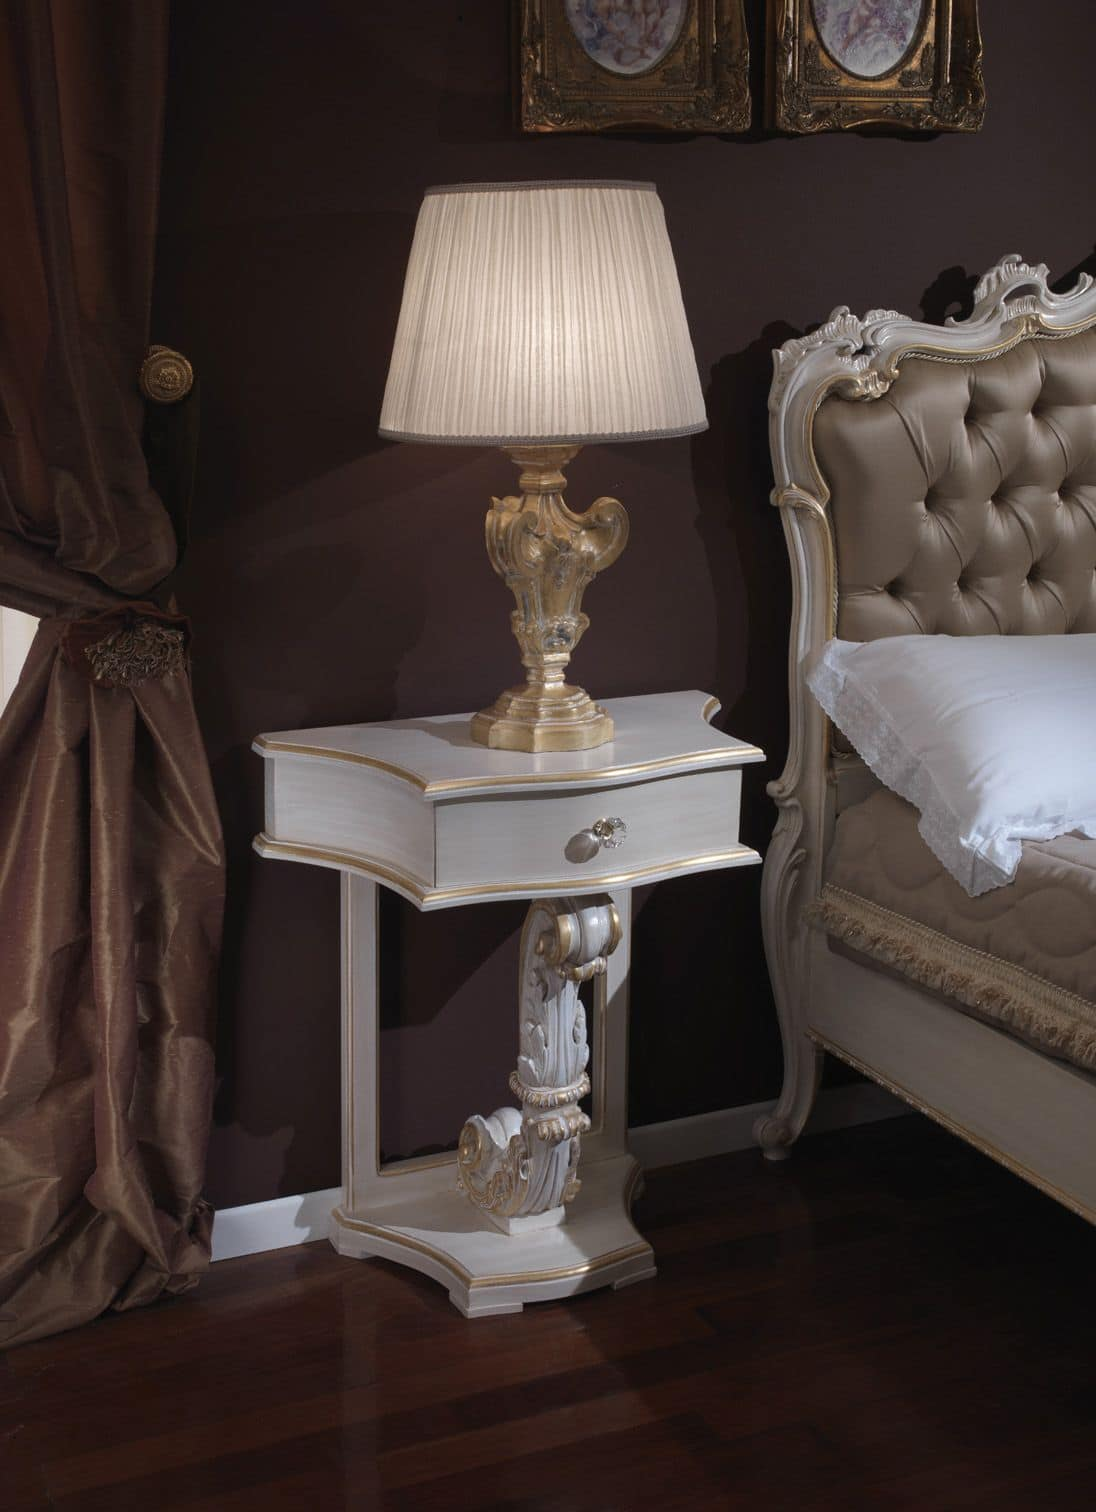 Classic bedside table - 3645 Bedside Table Classic Bedside Table With Gold Leaf Finishings Suited For Bedrooms